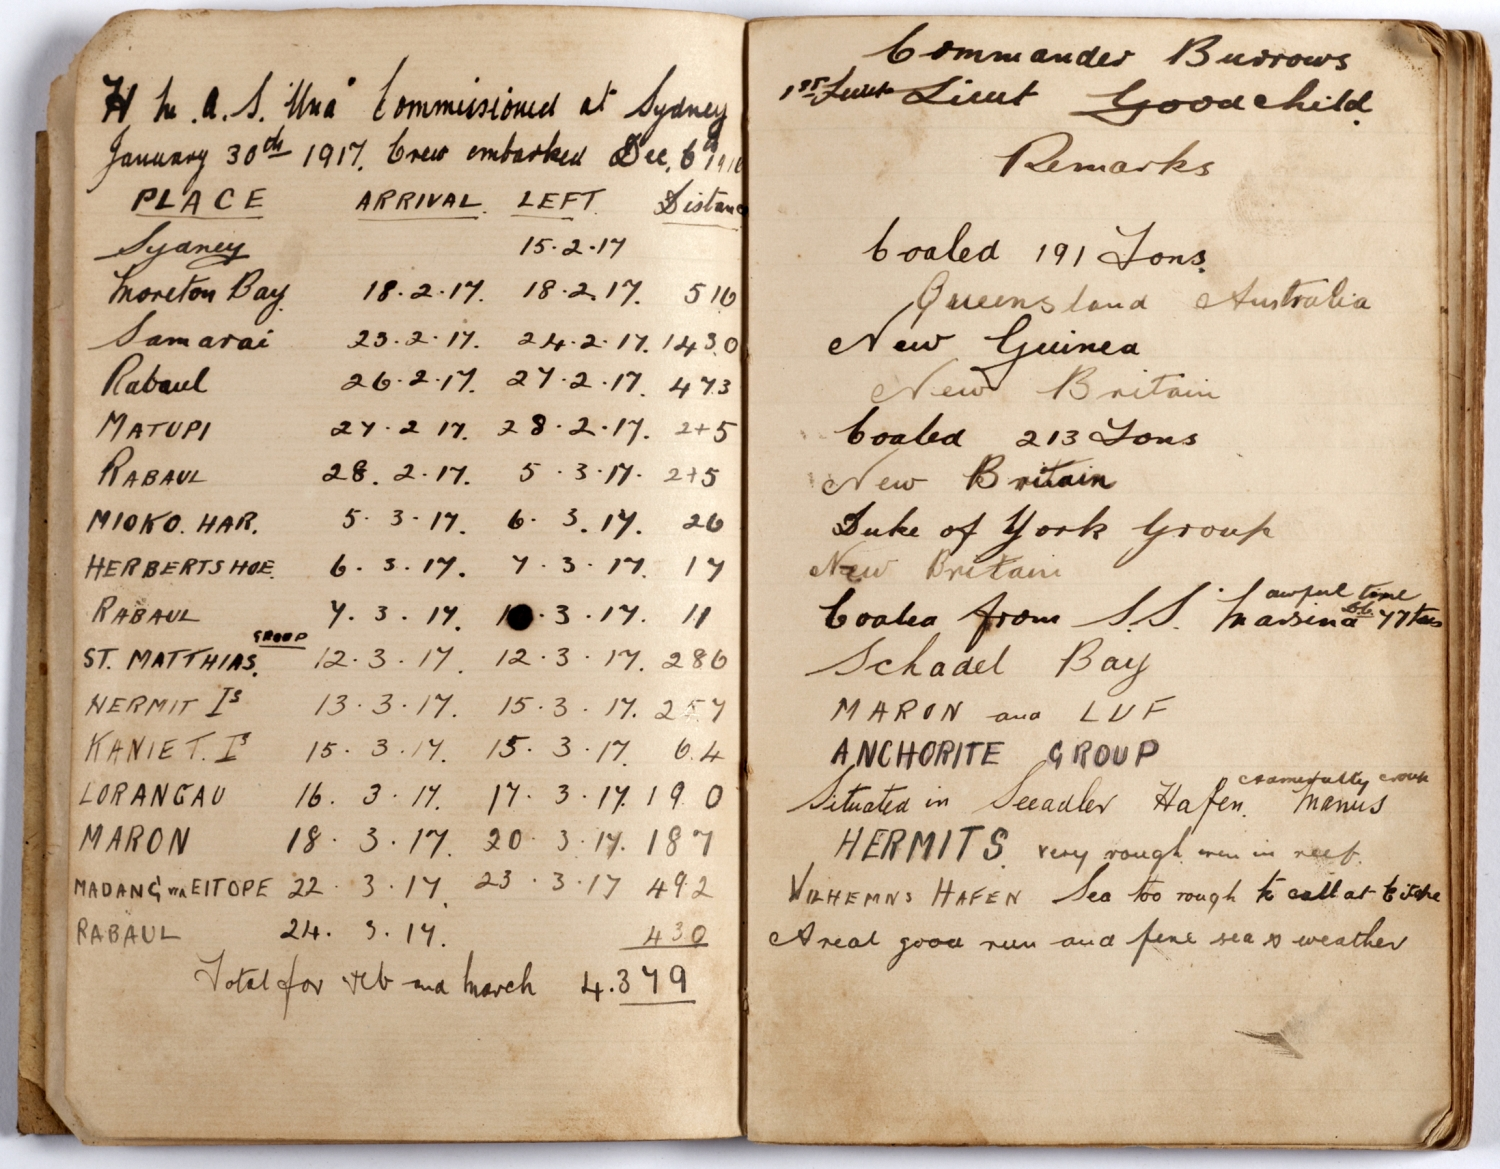 Two page spread of handwritten diary.